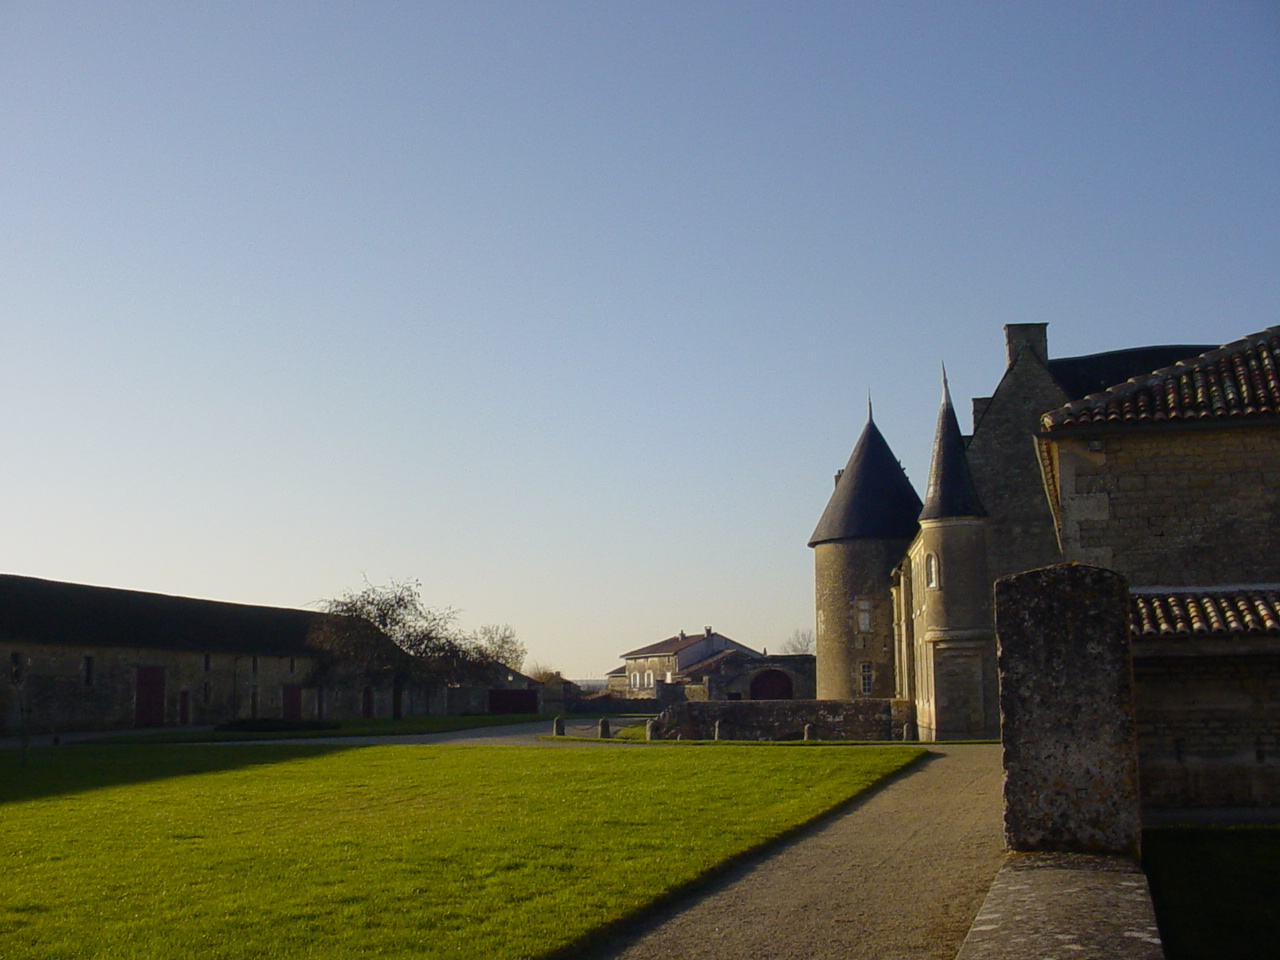 The courtyard of the chateau seen from the garden of the house